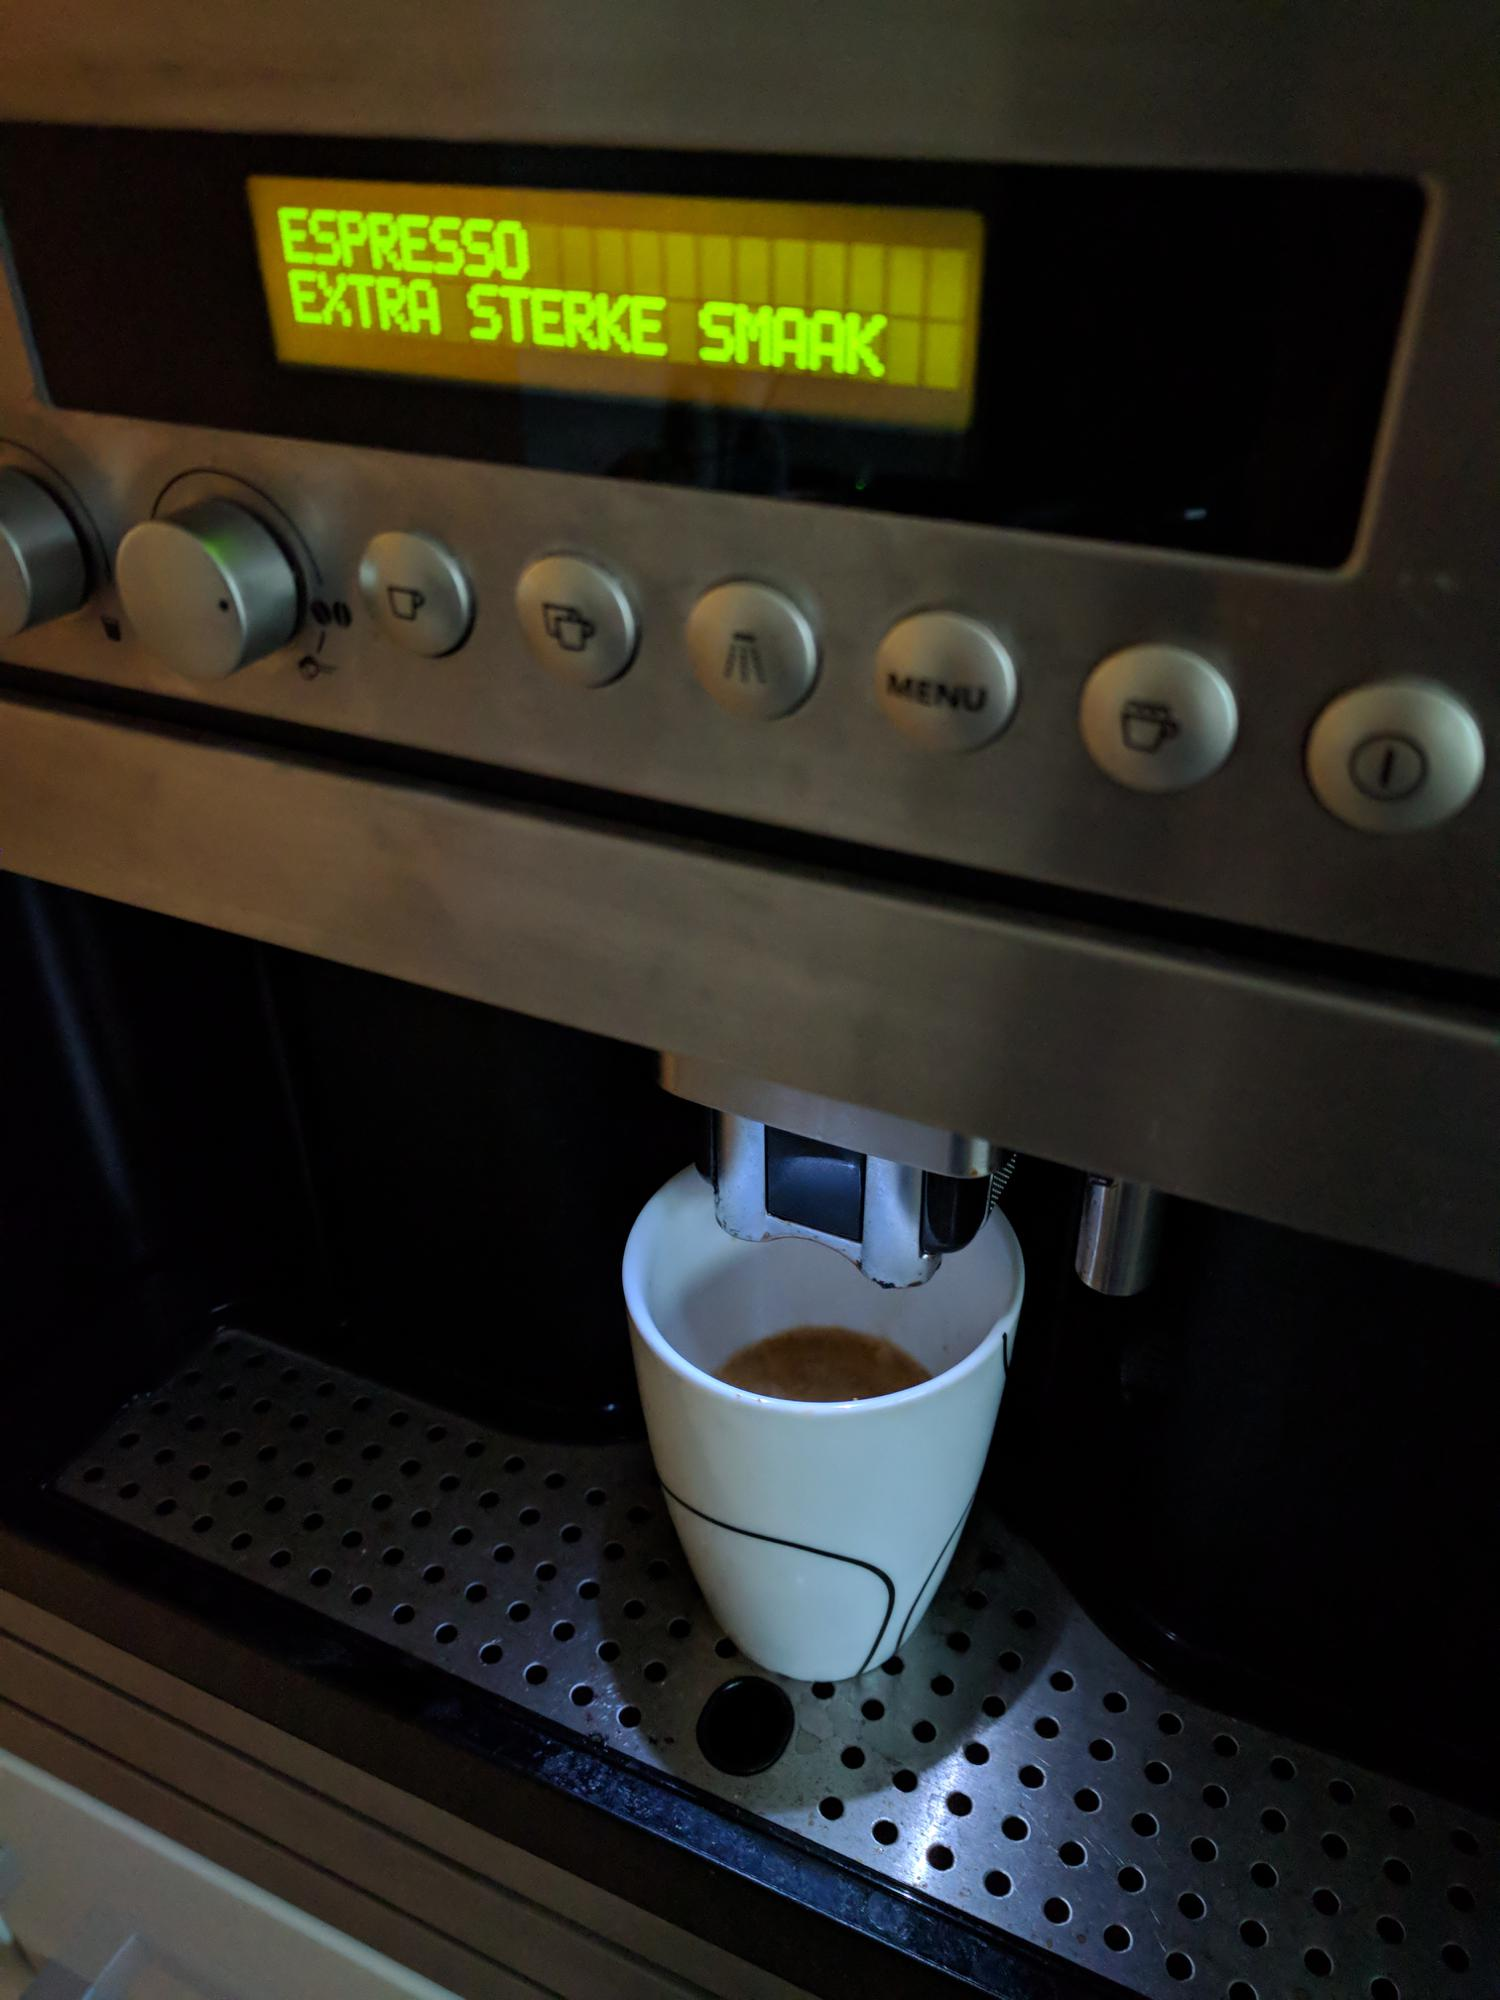 Espresso in a coffee machine